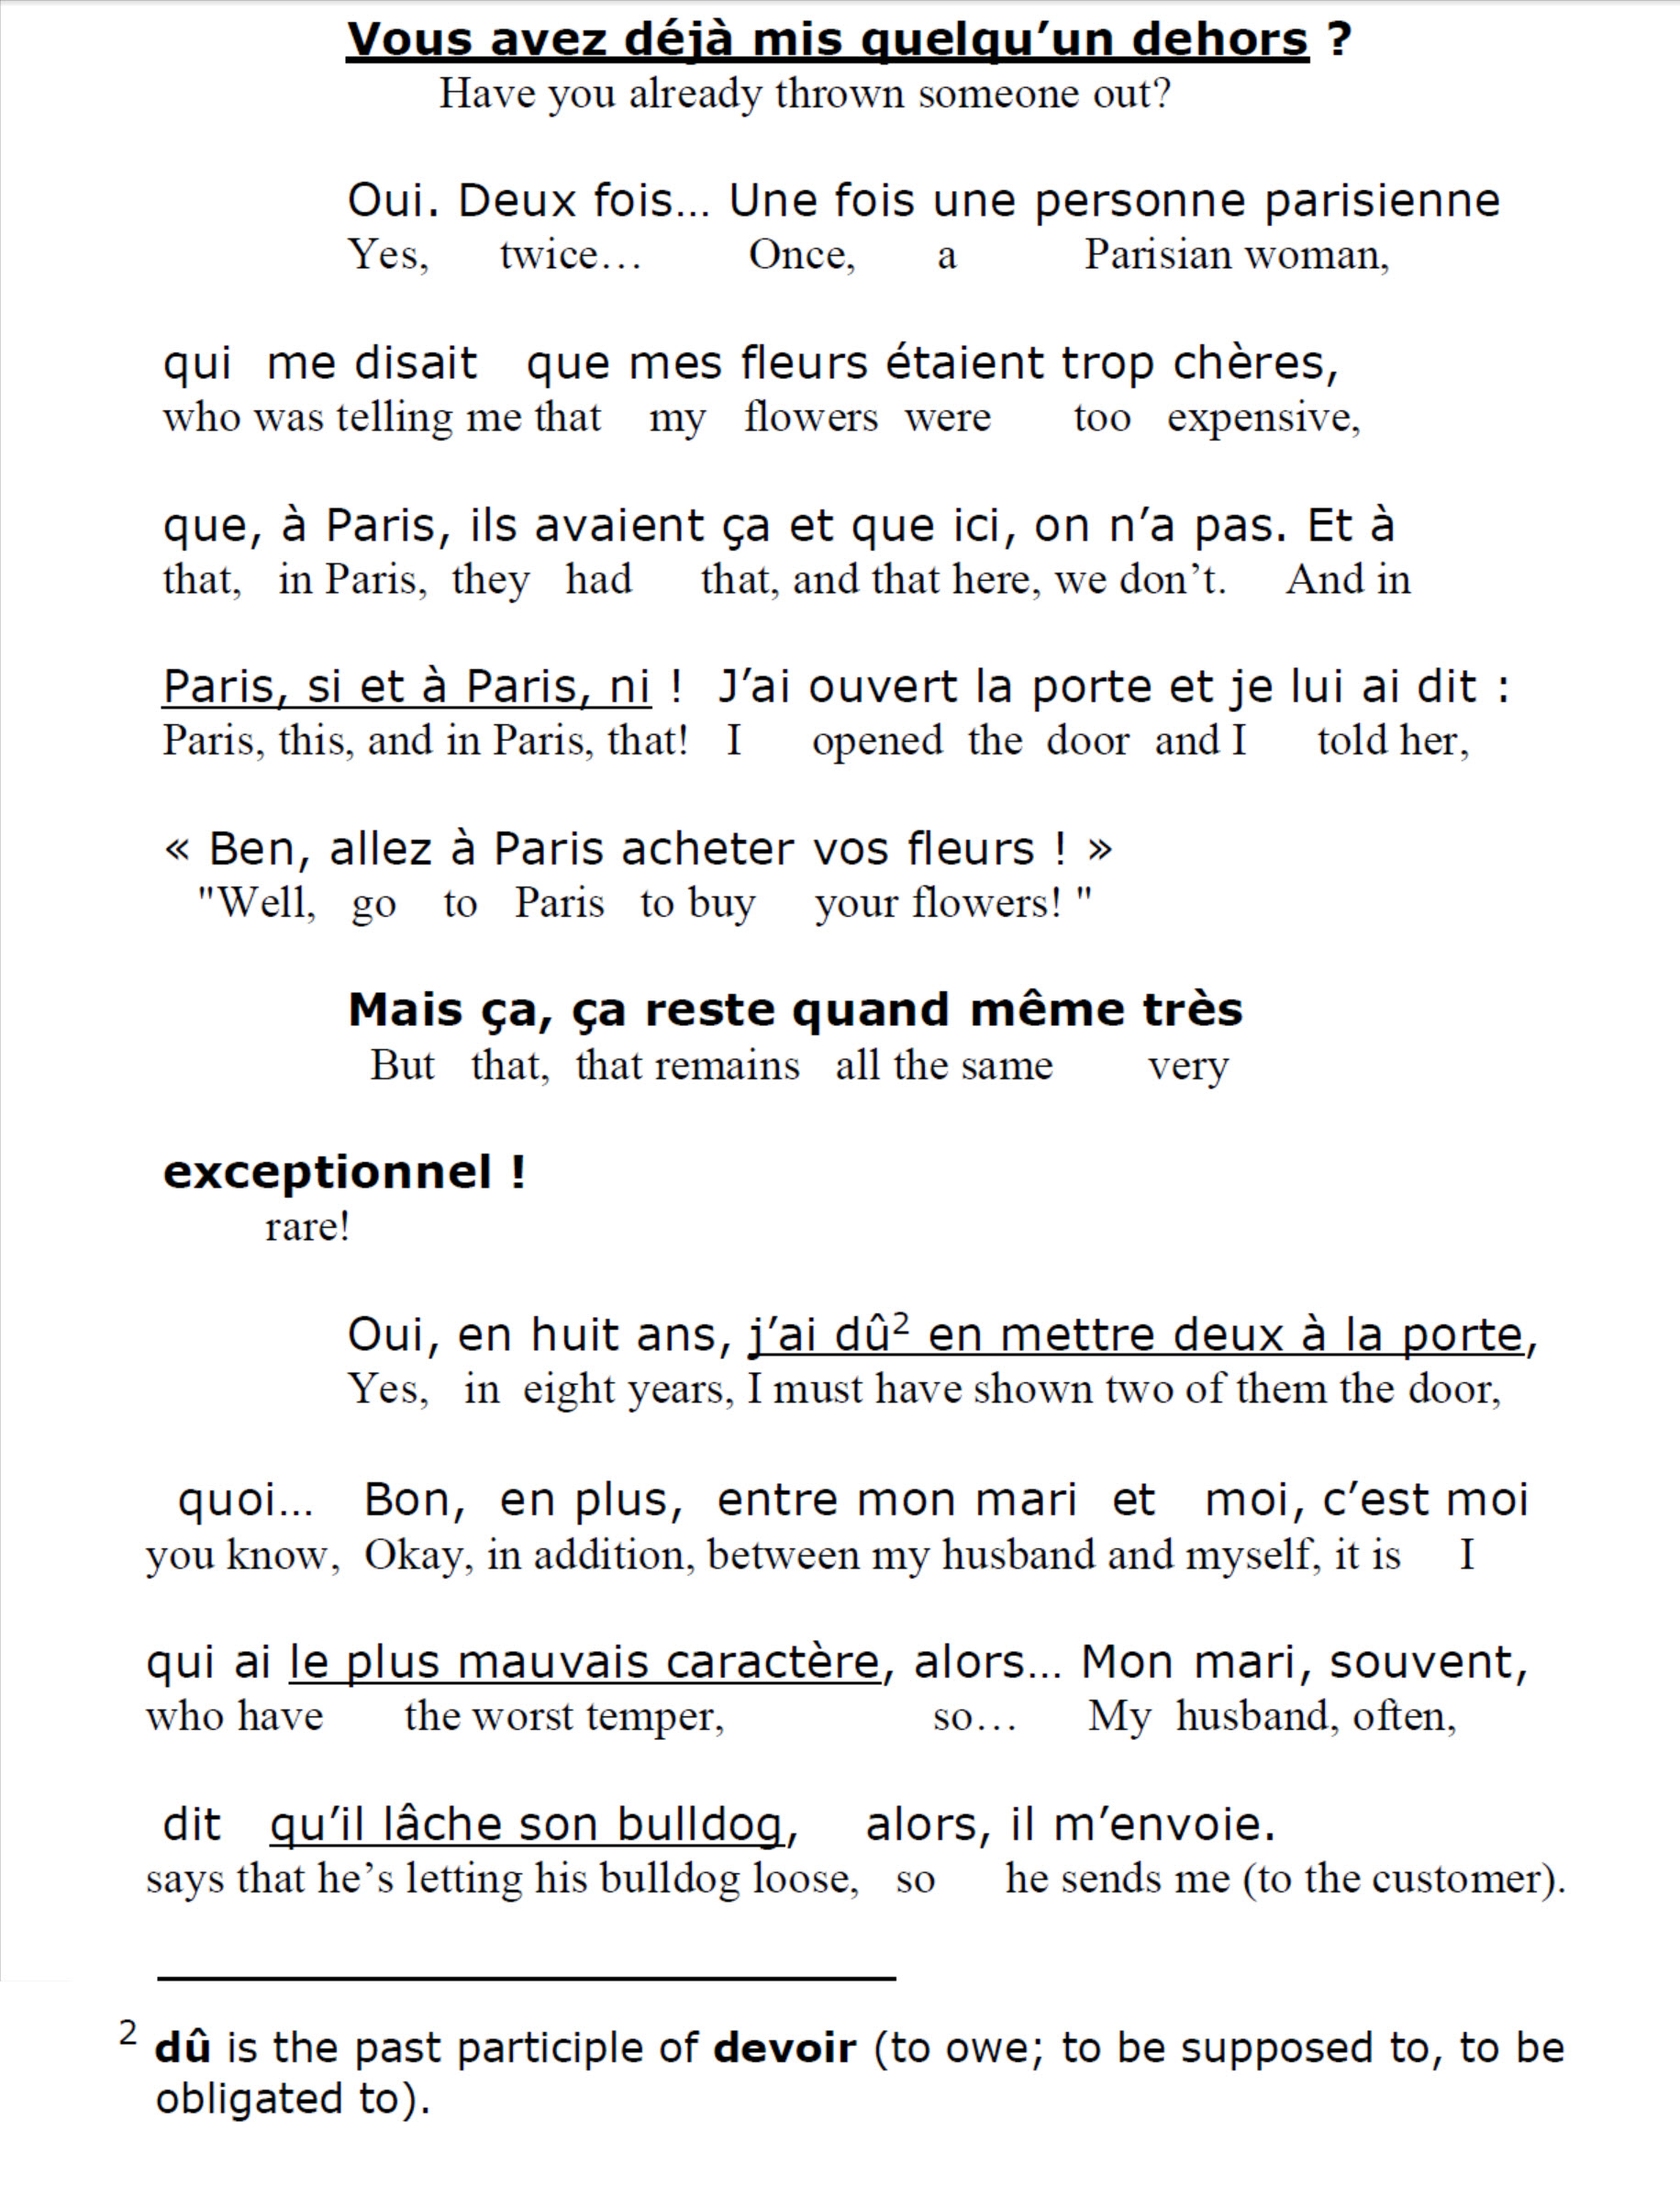 French Listening Comprehension - quoi at end of sentence